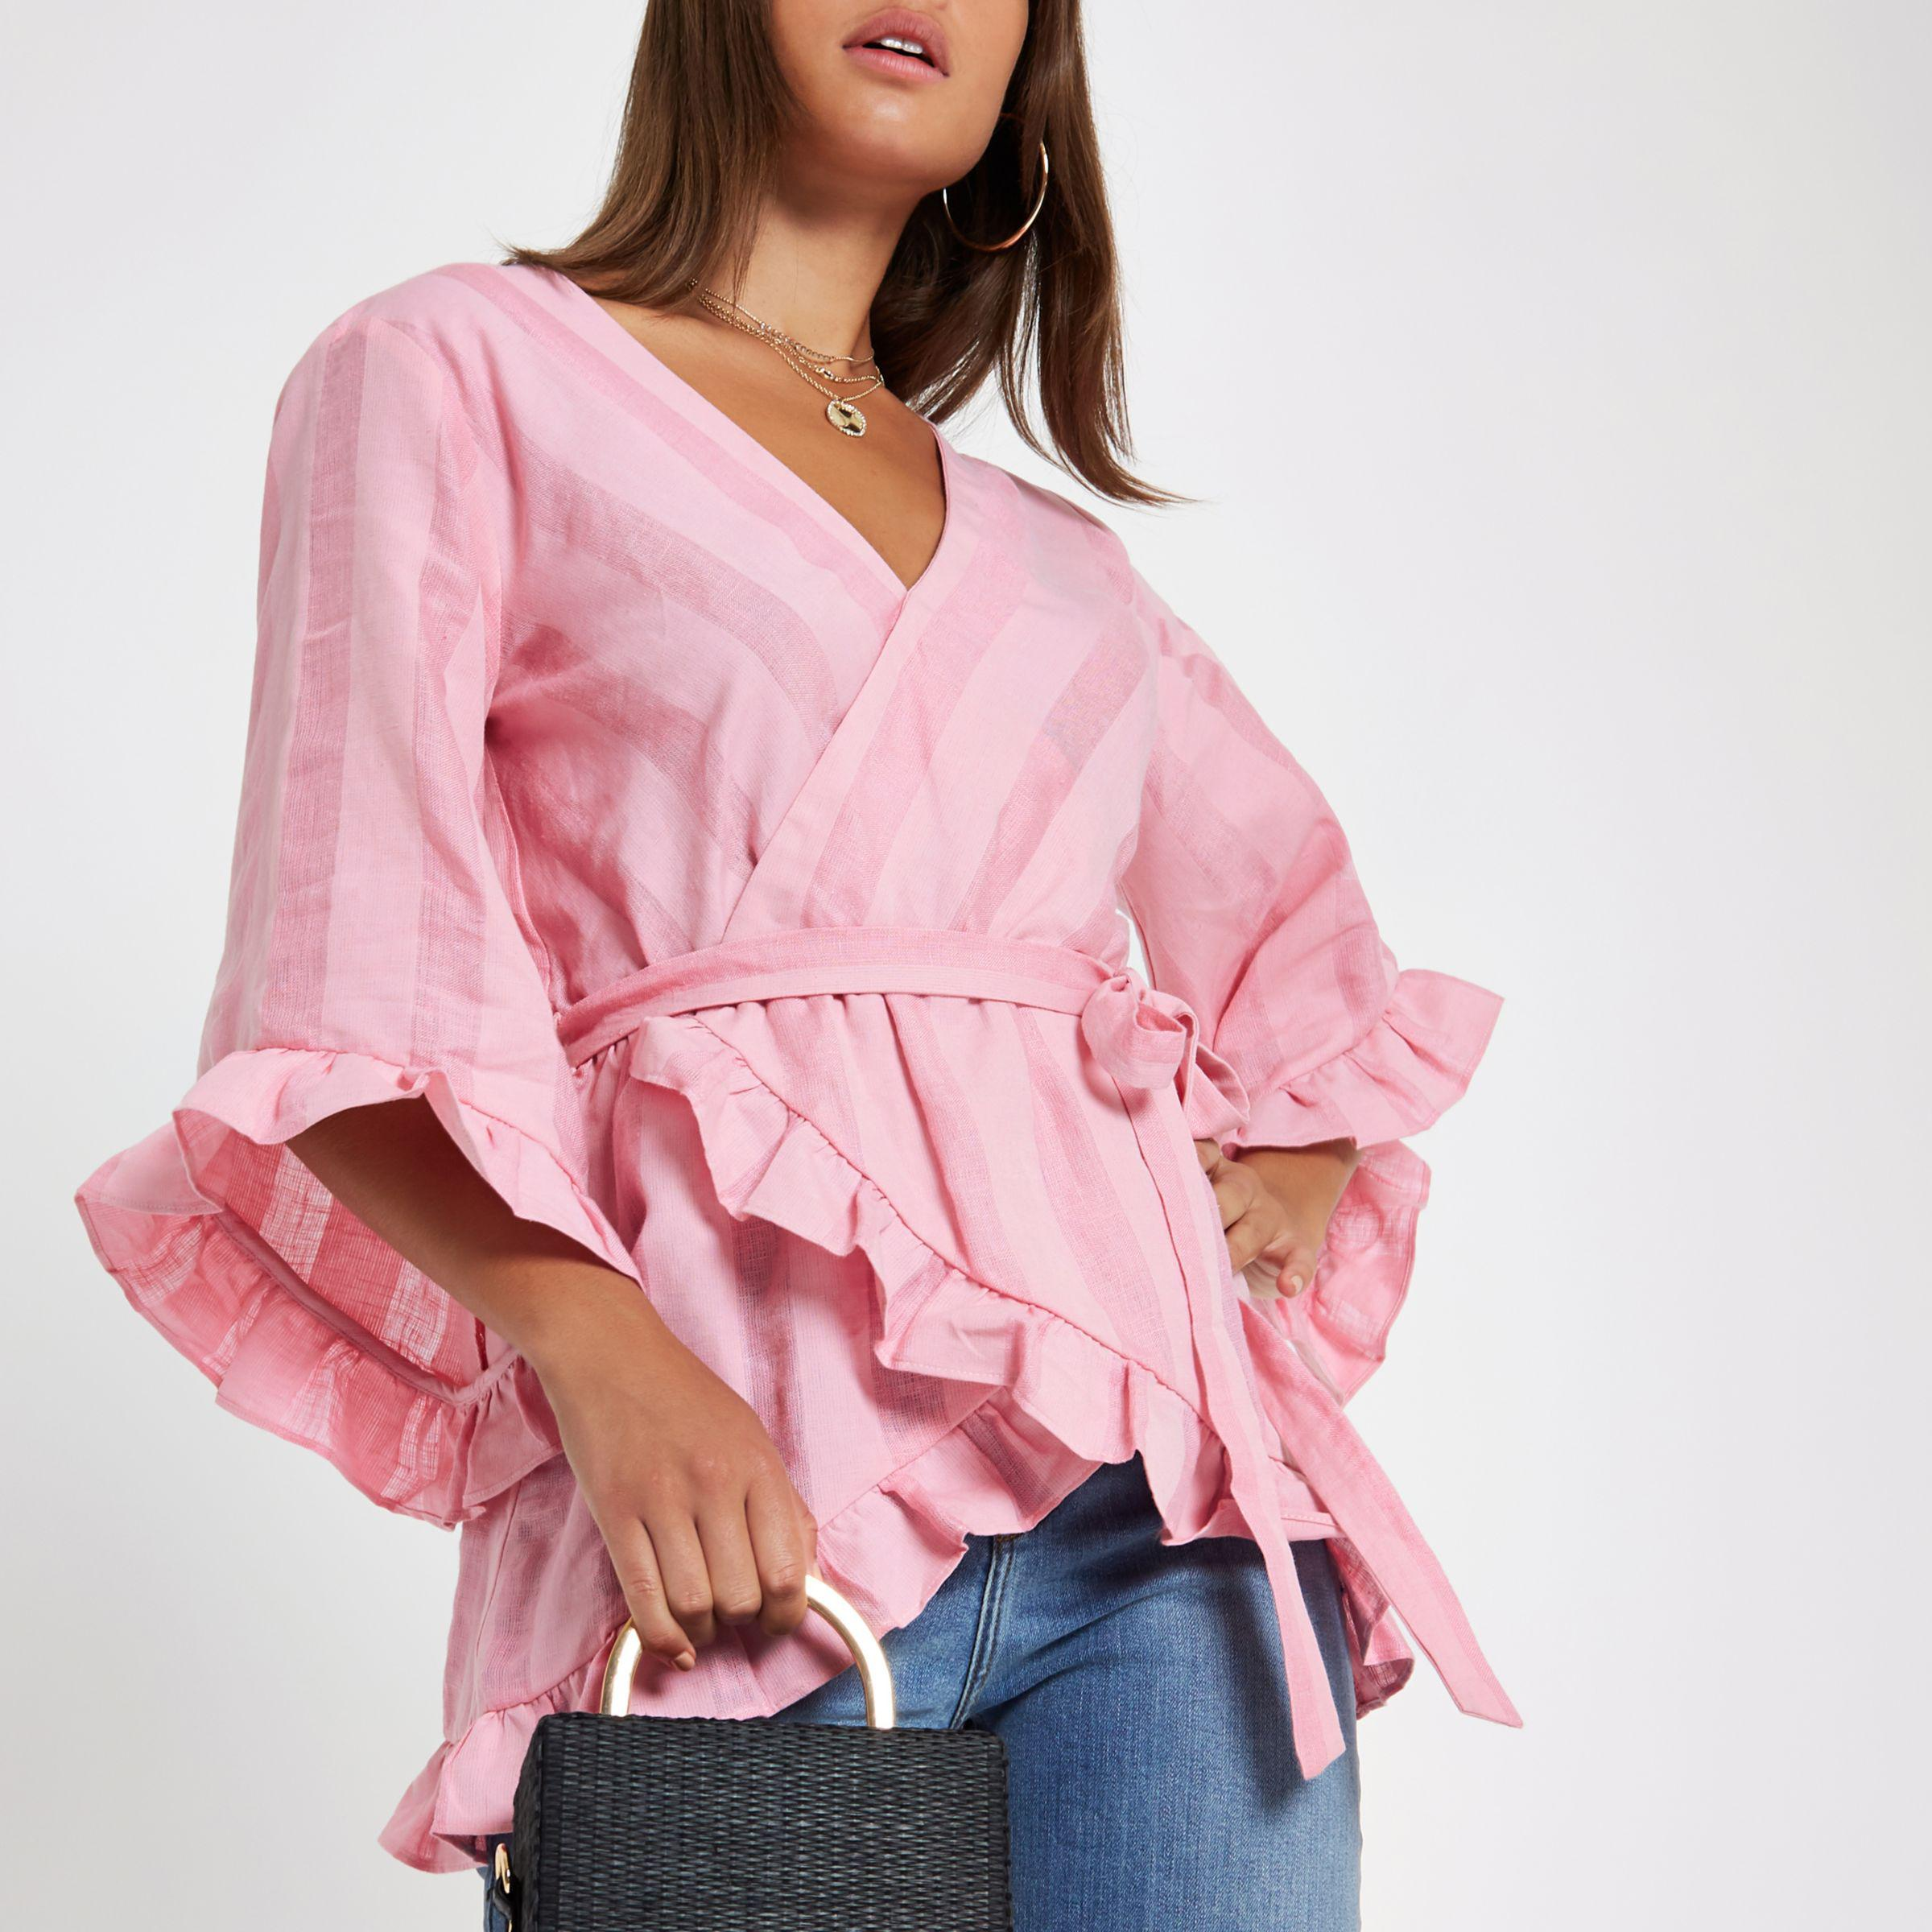 851a289904217 Lyst - River Island Pink Stripe Wrap Tie Waist Frill Blouse in Pink